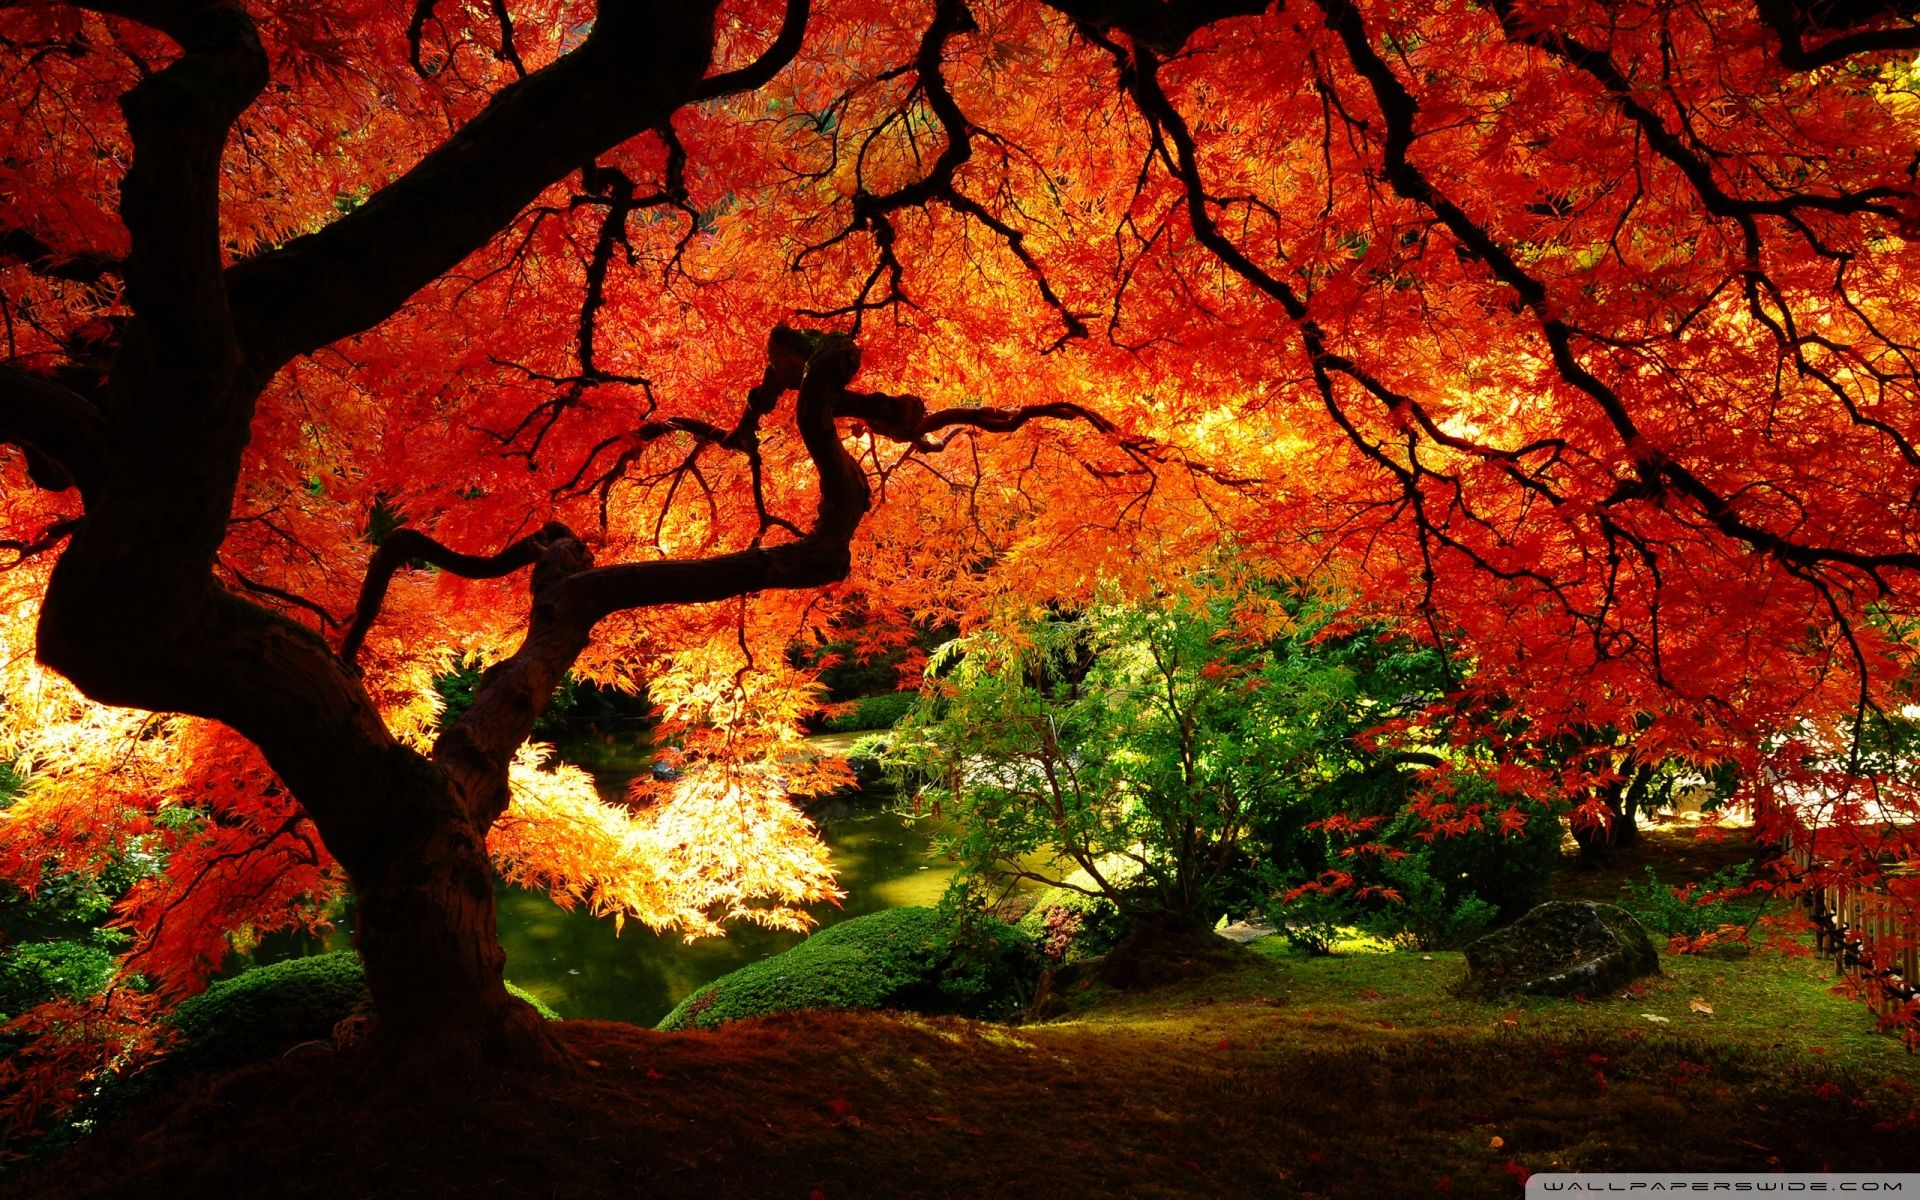 Beautiful Autumn Hd Desktop Wallpaper Mobile Dual Monitor Autumn Scenery Landscape Wallpaper Fall Wallpaper